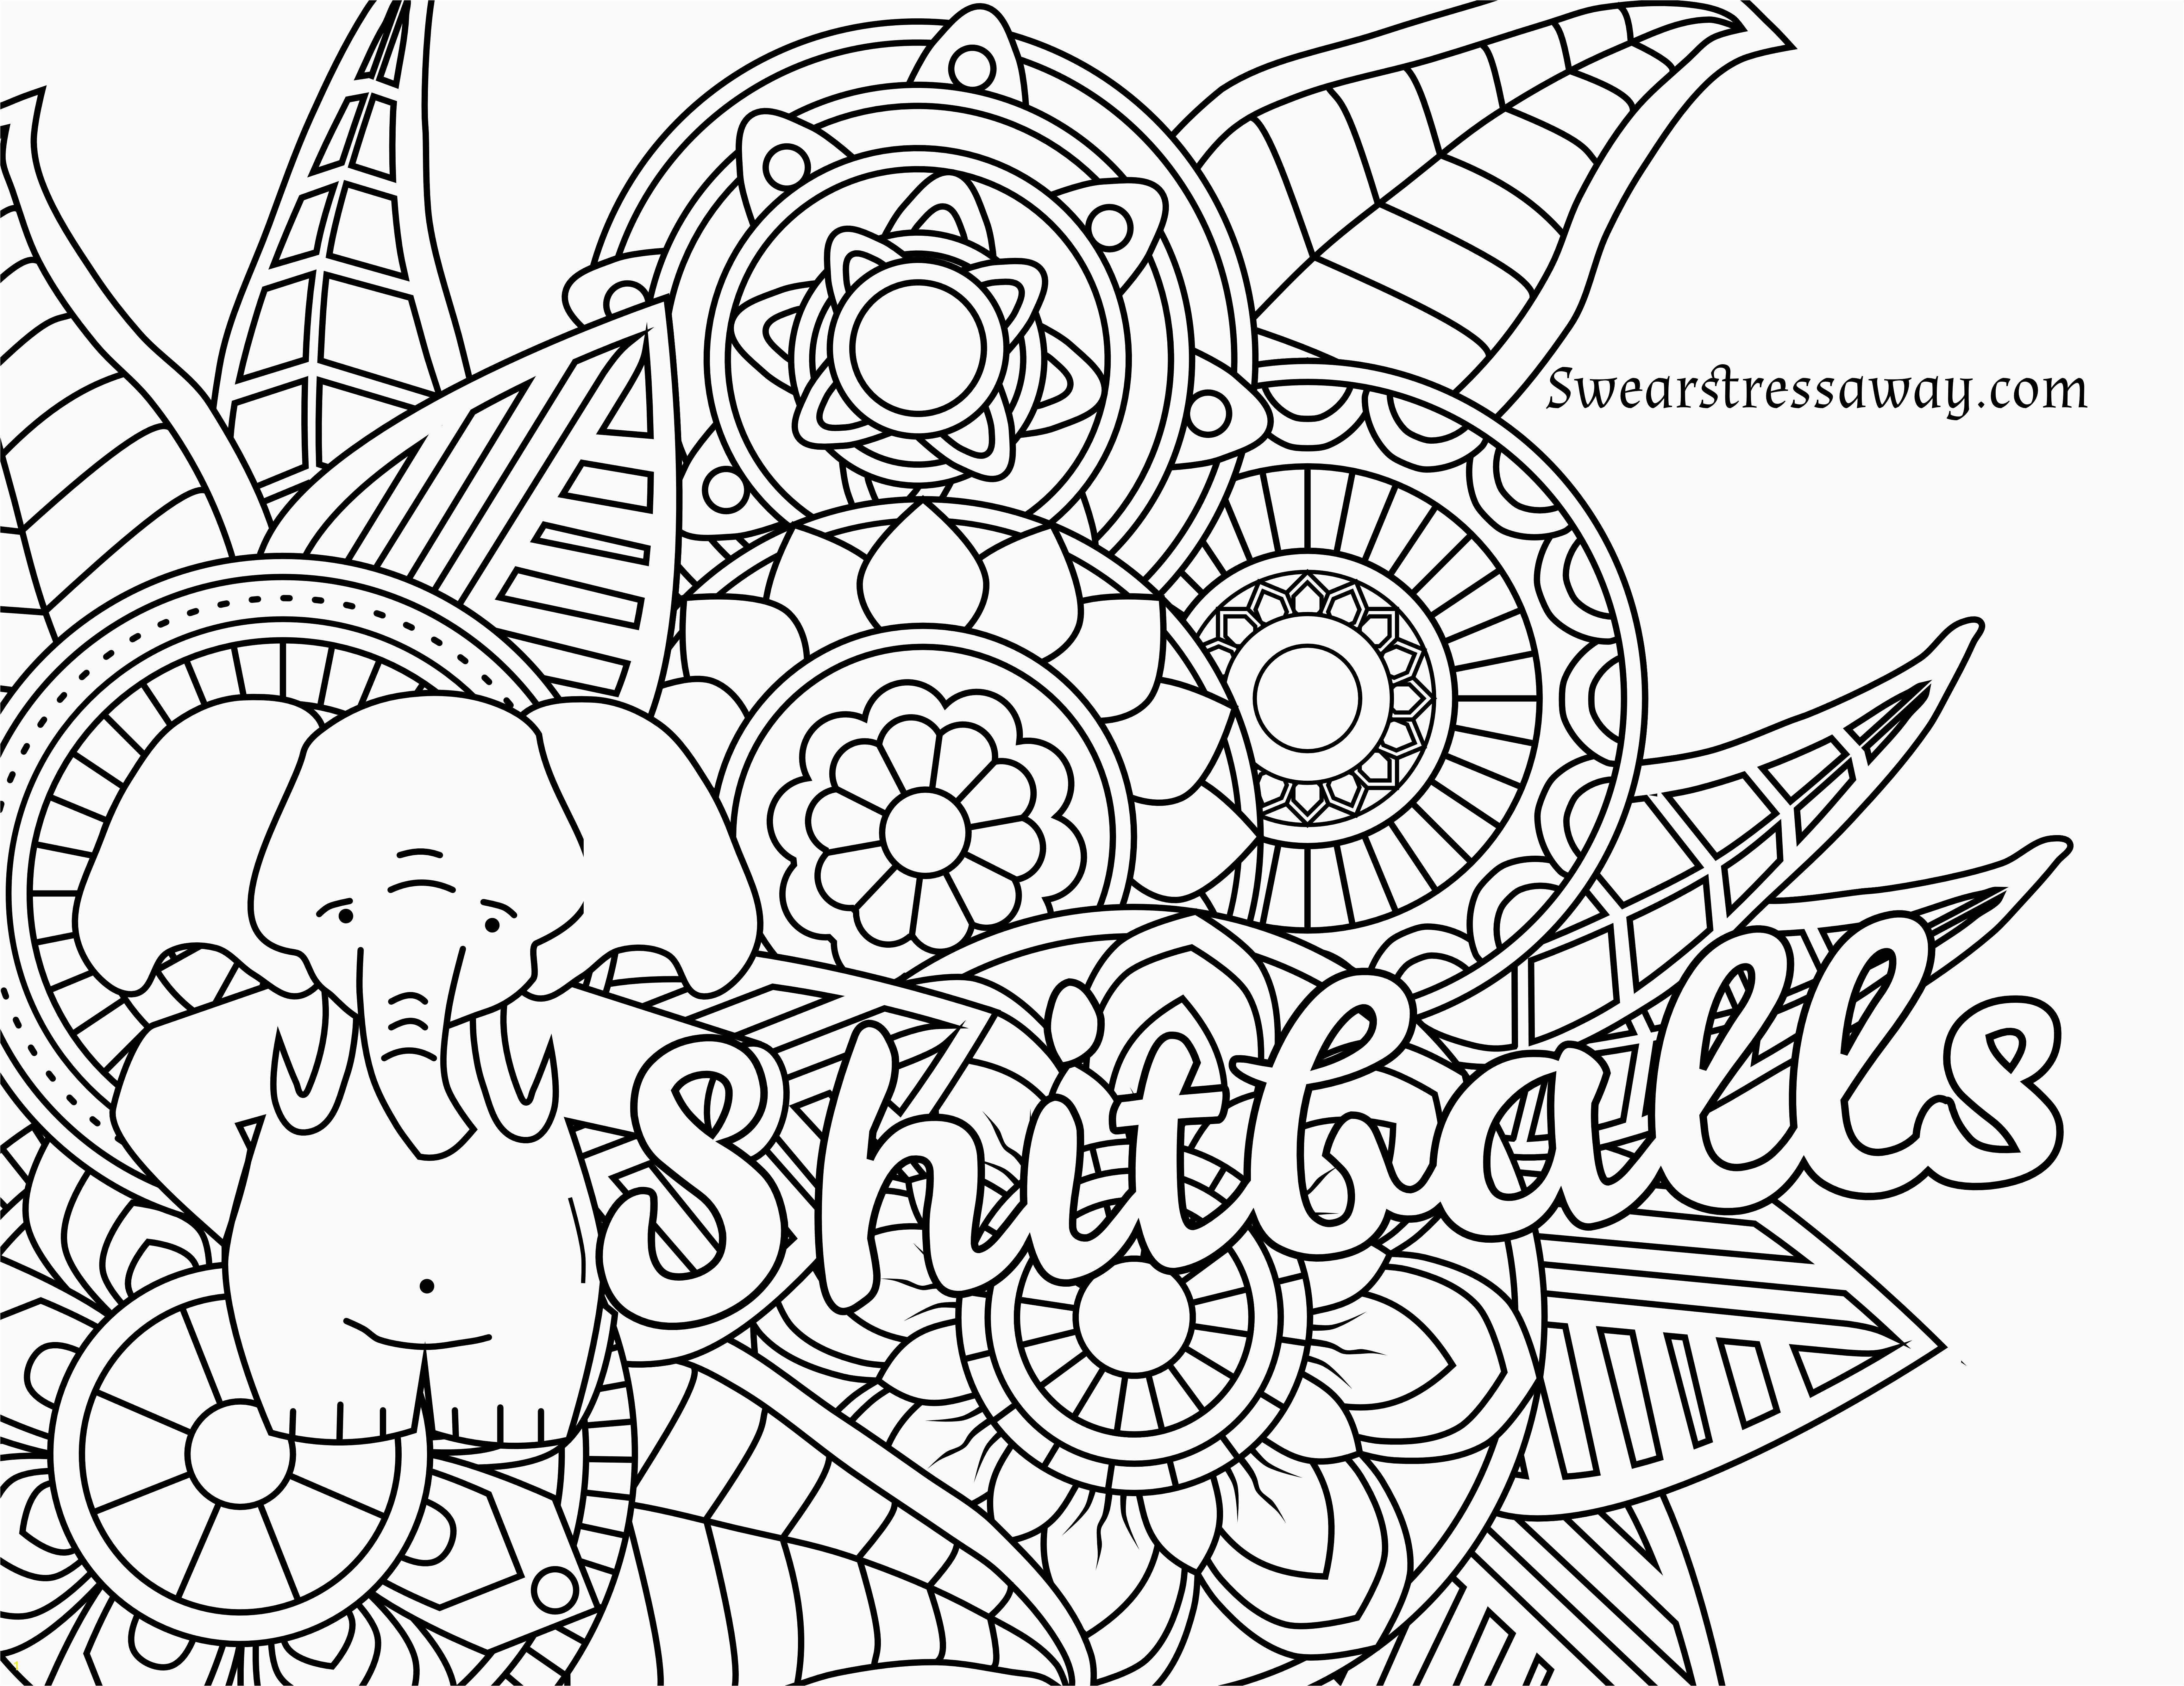 Free Swear Word Coloring Pages for Adults and Engaging Fall Coloring Pages Printable 26 Kids New